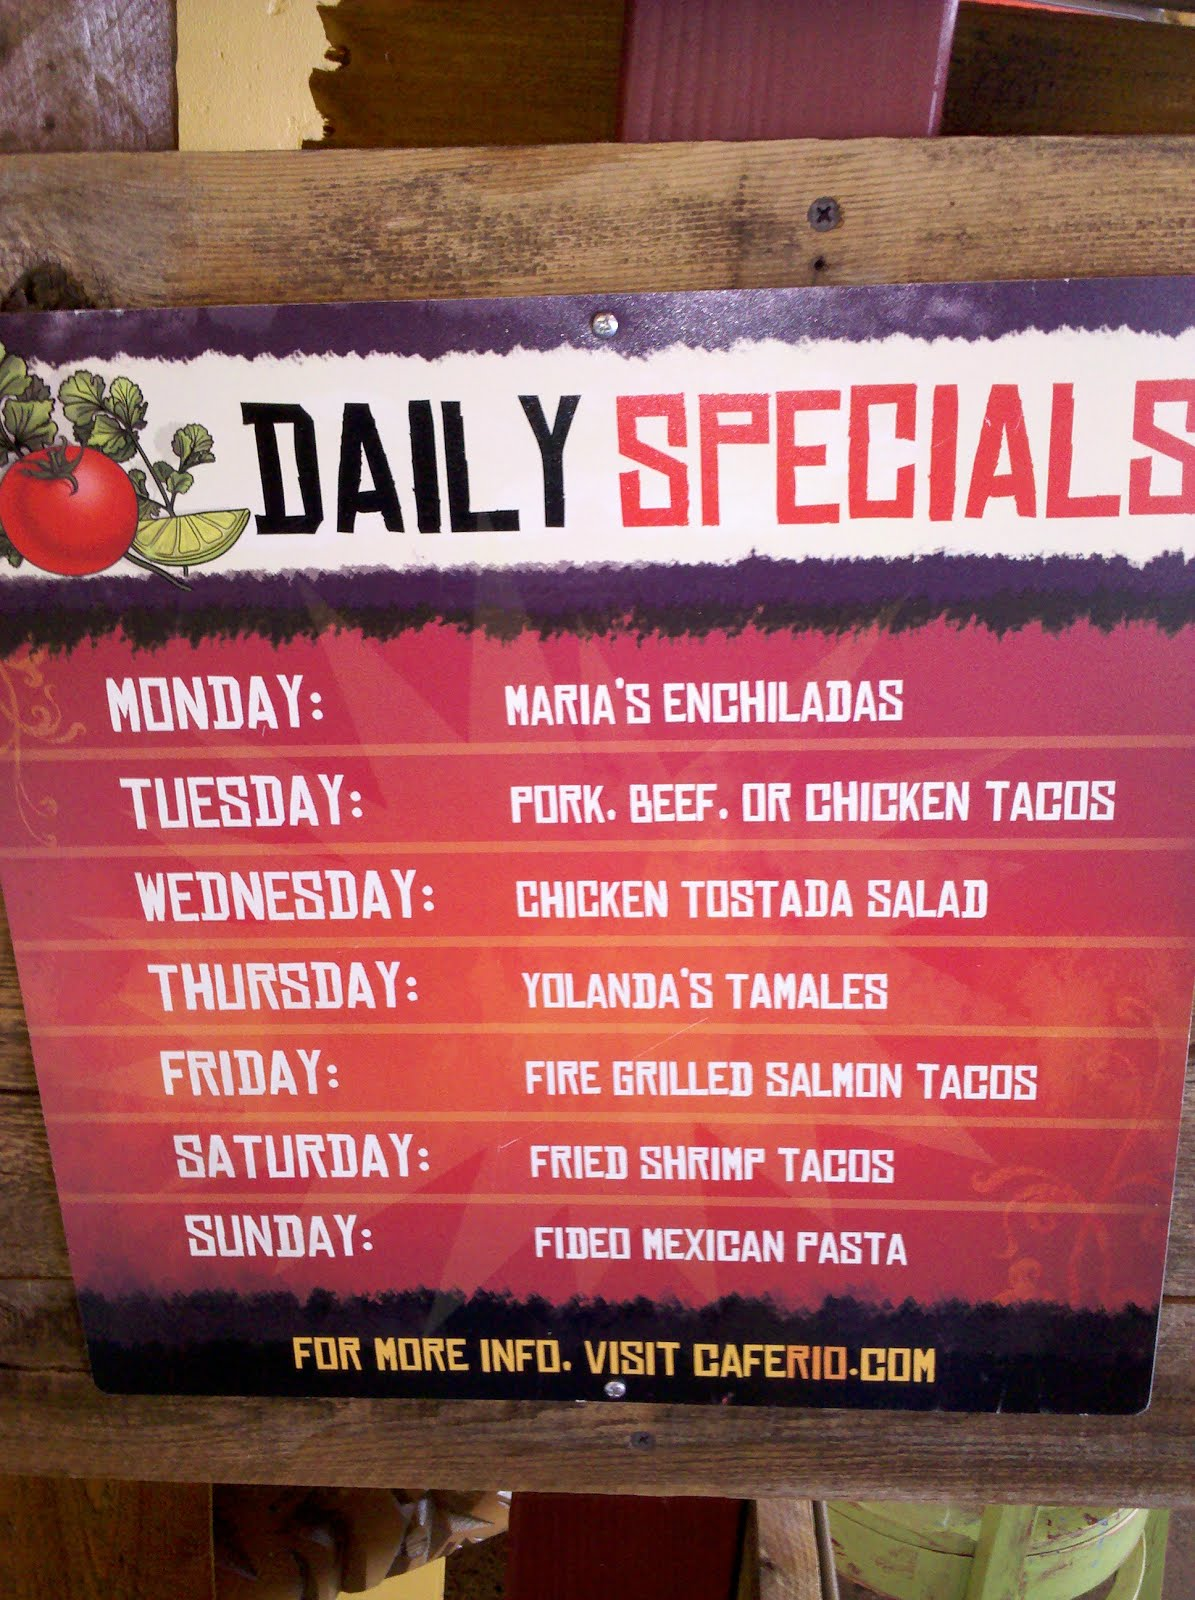 Cafe Rio Menu Friday Special